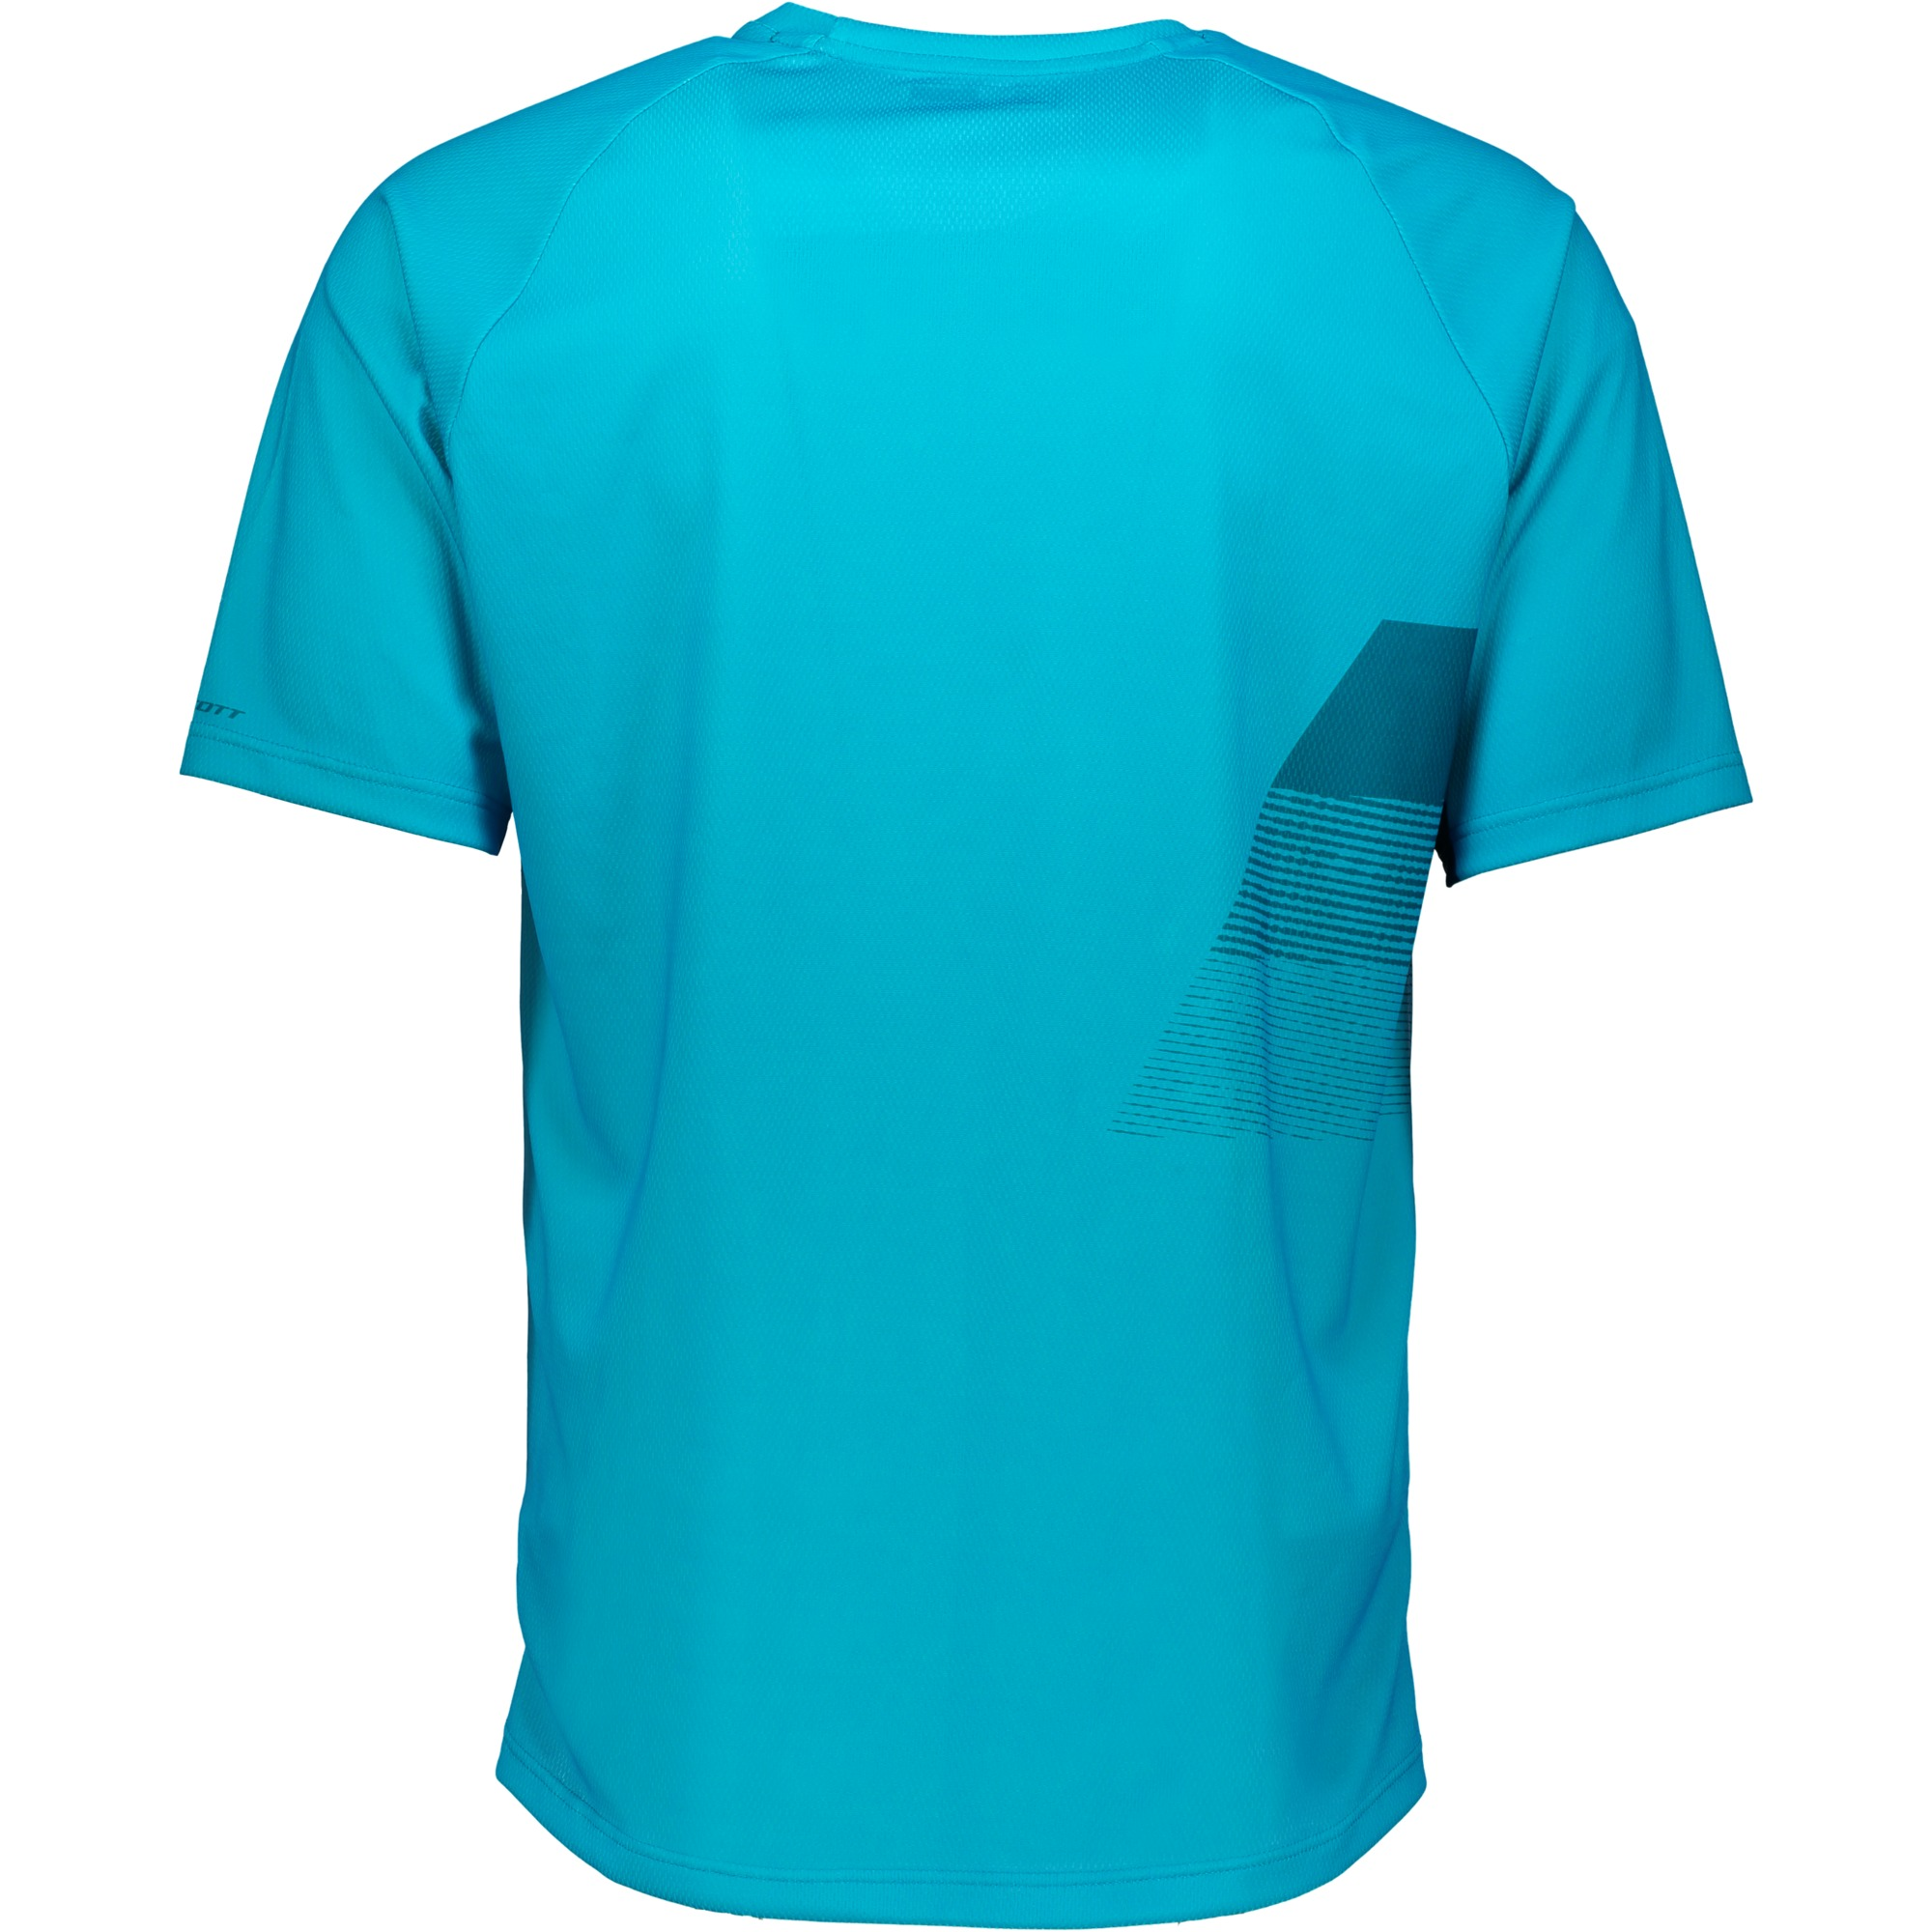 SCOTT Trail 60 s/sl Shirt